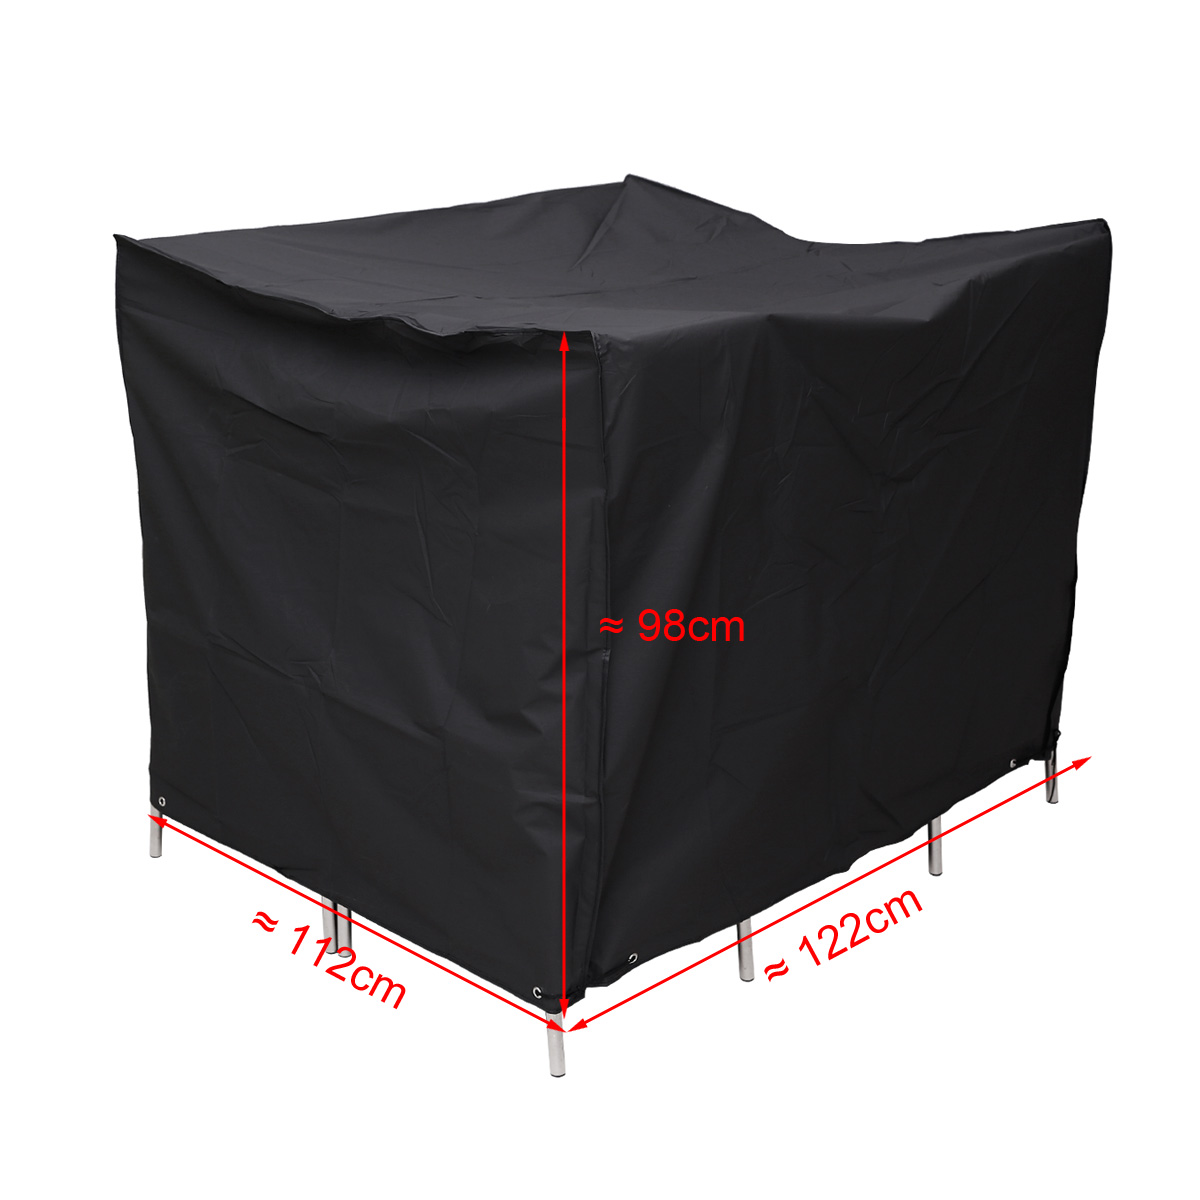 GARDEN PATIO FURNITURE SET COVER CUBE WATERPROOF TABLE CHAIR SHELTER MANY SIZ